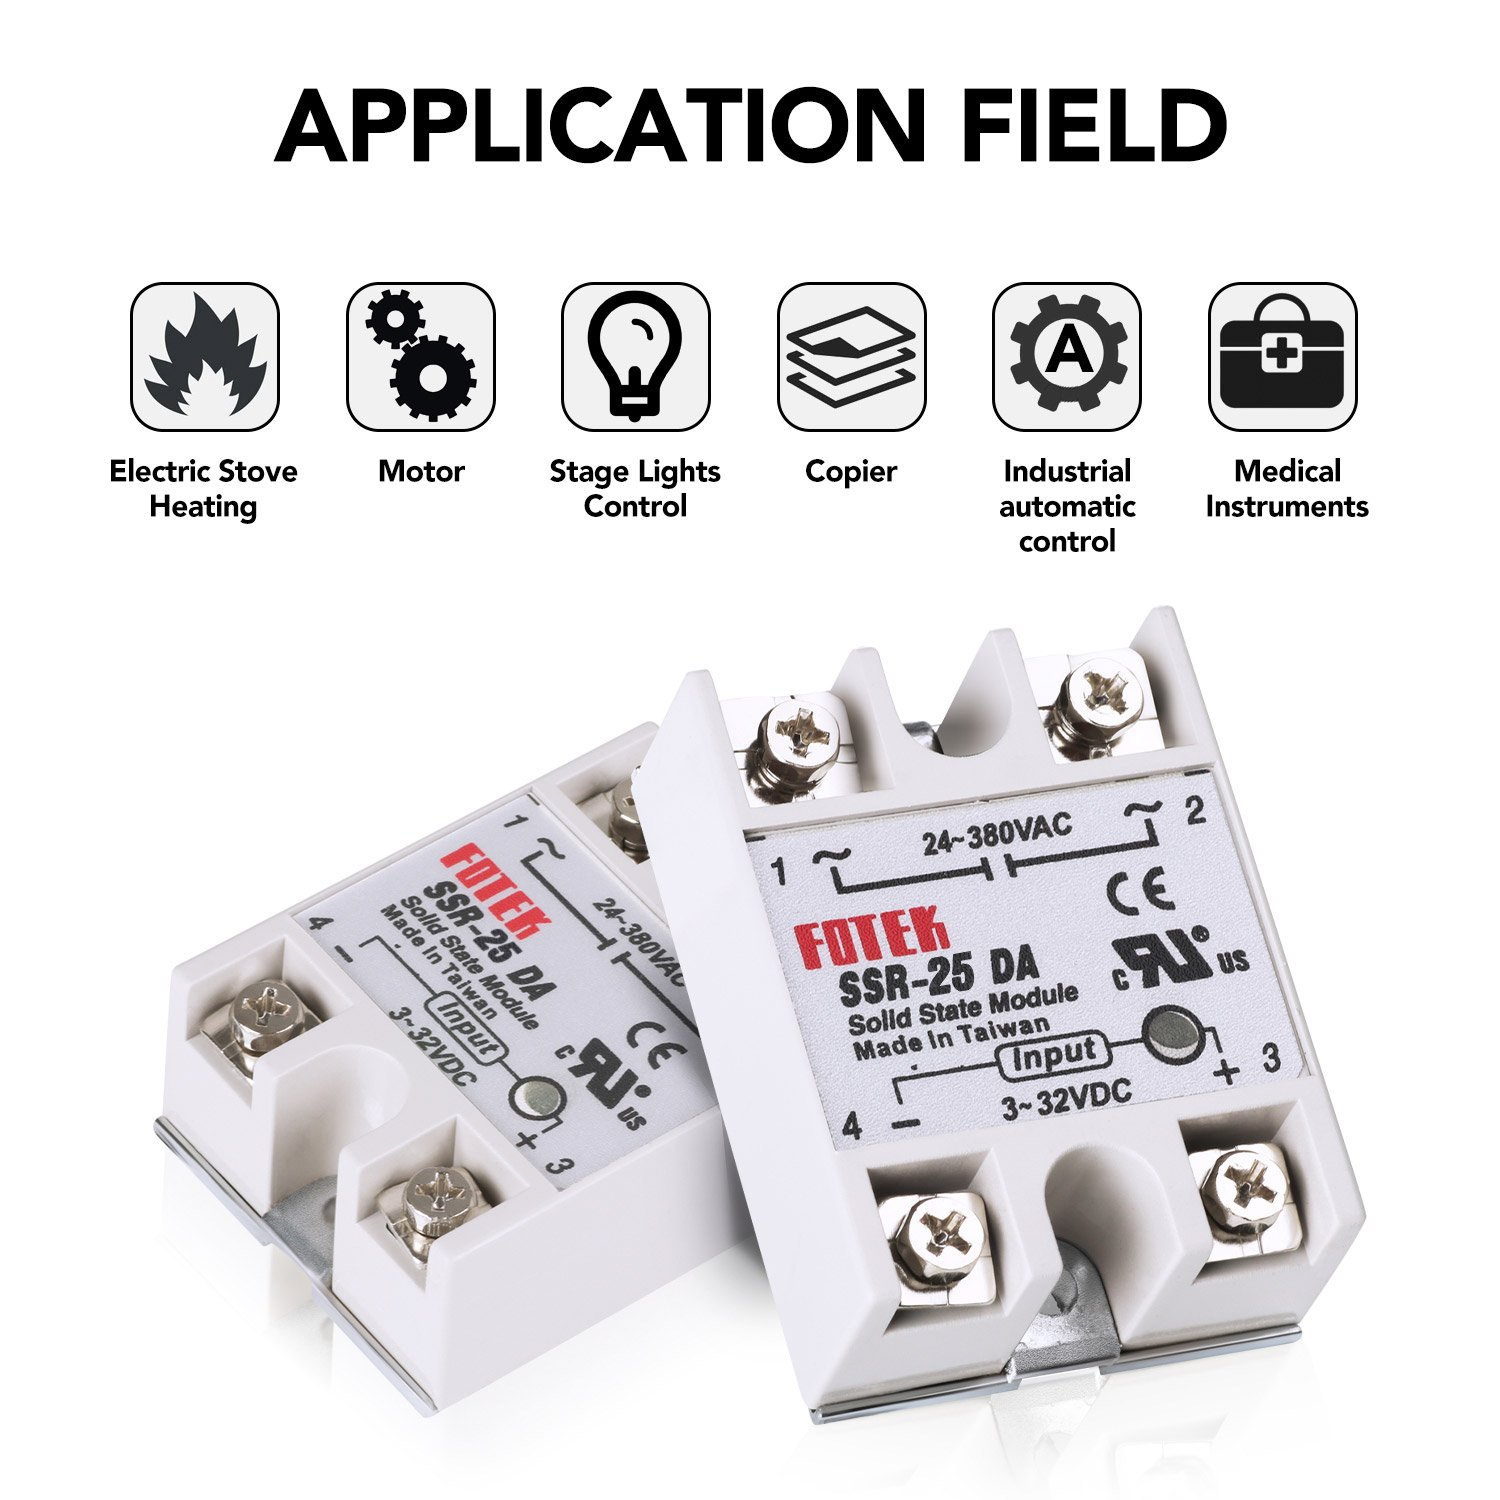 Mysweety 3pcs Ssr 25da Solid State Relay Single Phase Semi Conductor Taiwan Input 3 32v Dc Output 24 380v Ac 202495 Us2 Relays Industrial